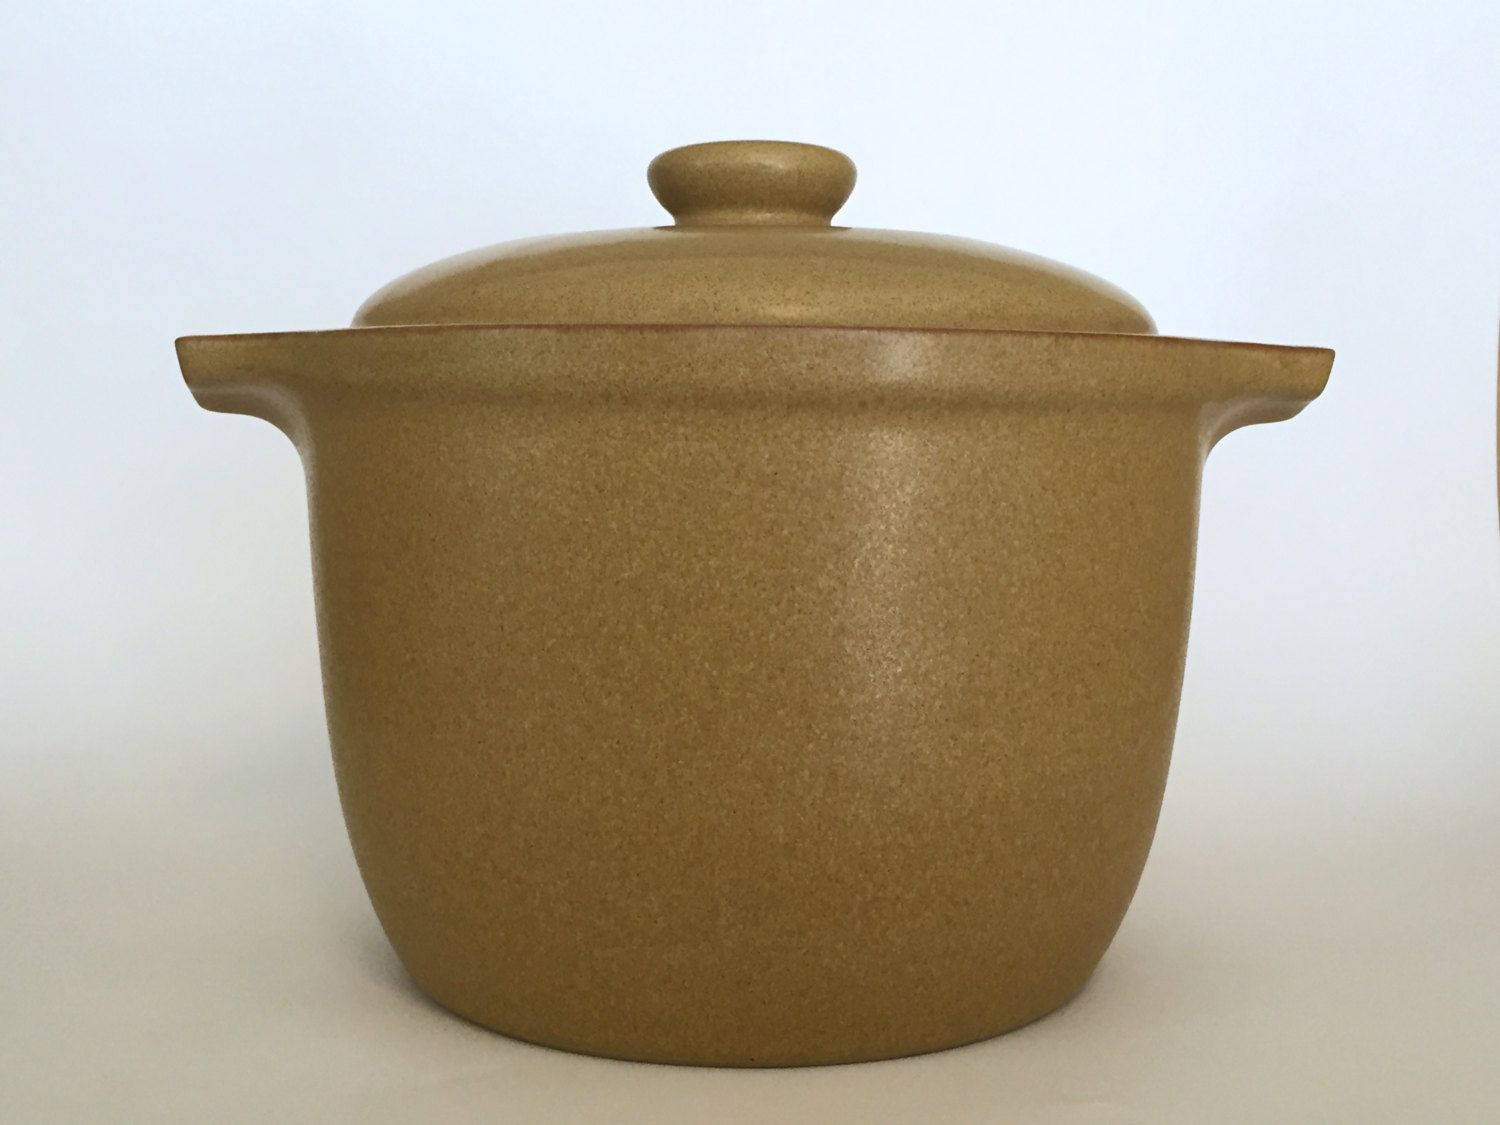 Rare Denby Stoneware Tall 2 Quart Covered Casserole Ode Pattern | 1960s English Production Pottery | Mid Century Modern